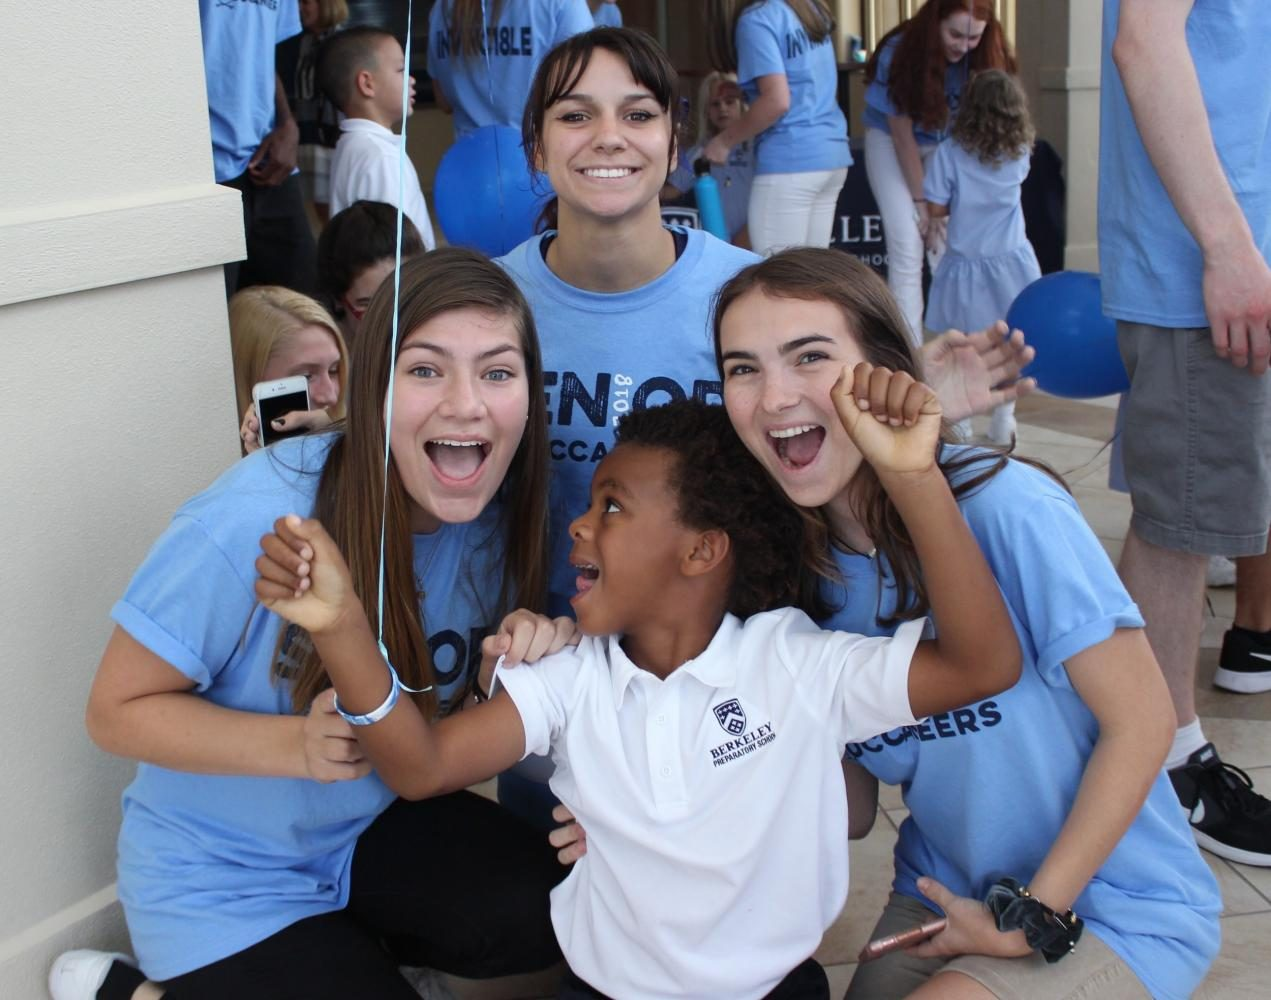 """FUN AND GAMES: Karina Barcenas '18, Natalie Belluccia '18 and Caroline Paskert '18 (from left) enjoyed making funny faces with their buddy, Baylin Moein '30. """"He was so silly! I loved hanging out with him,"""" Barcenas said."""